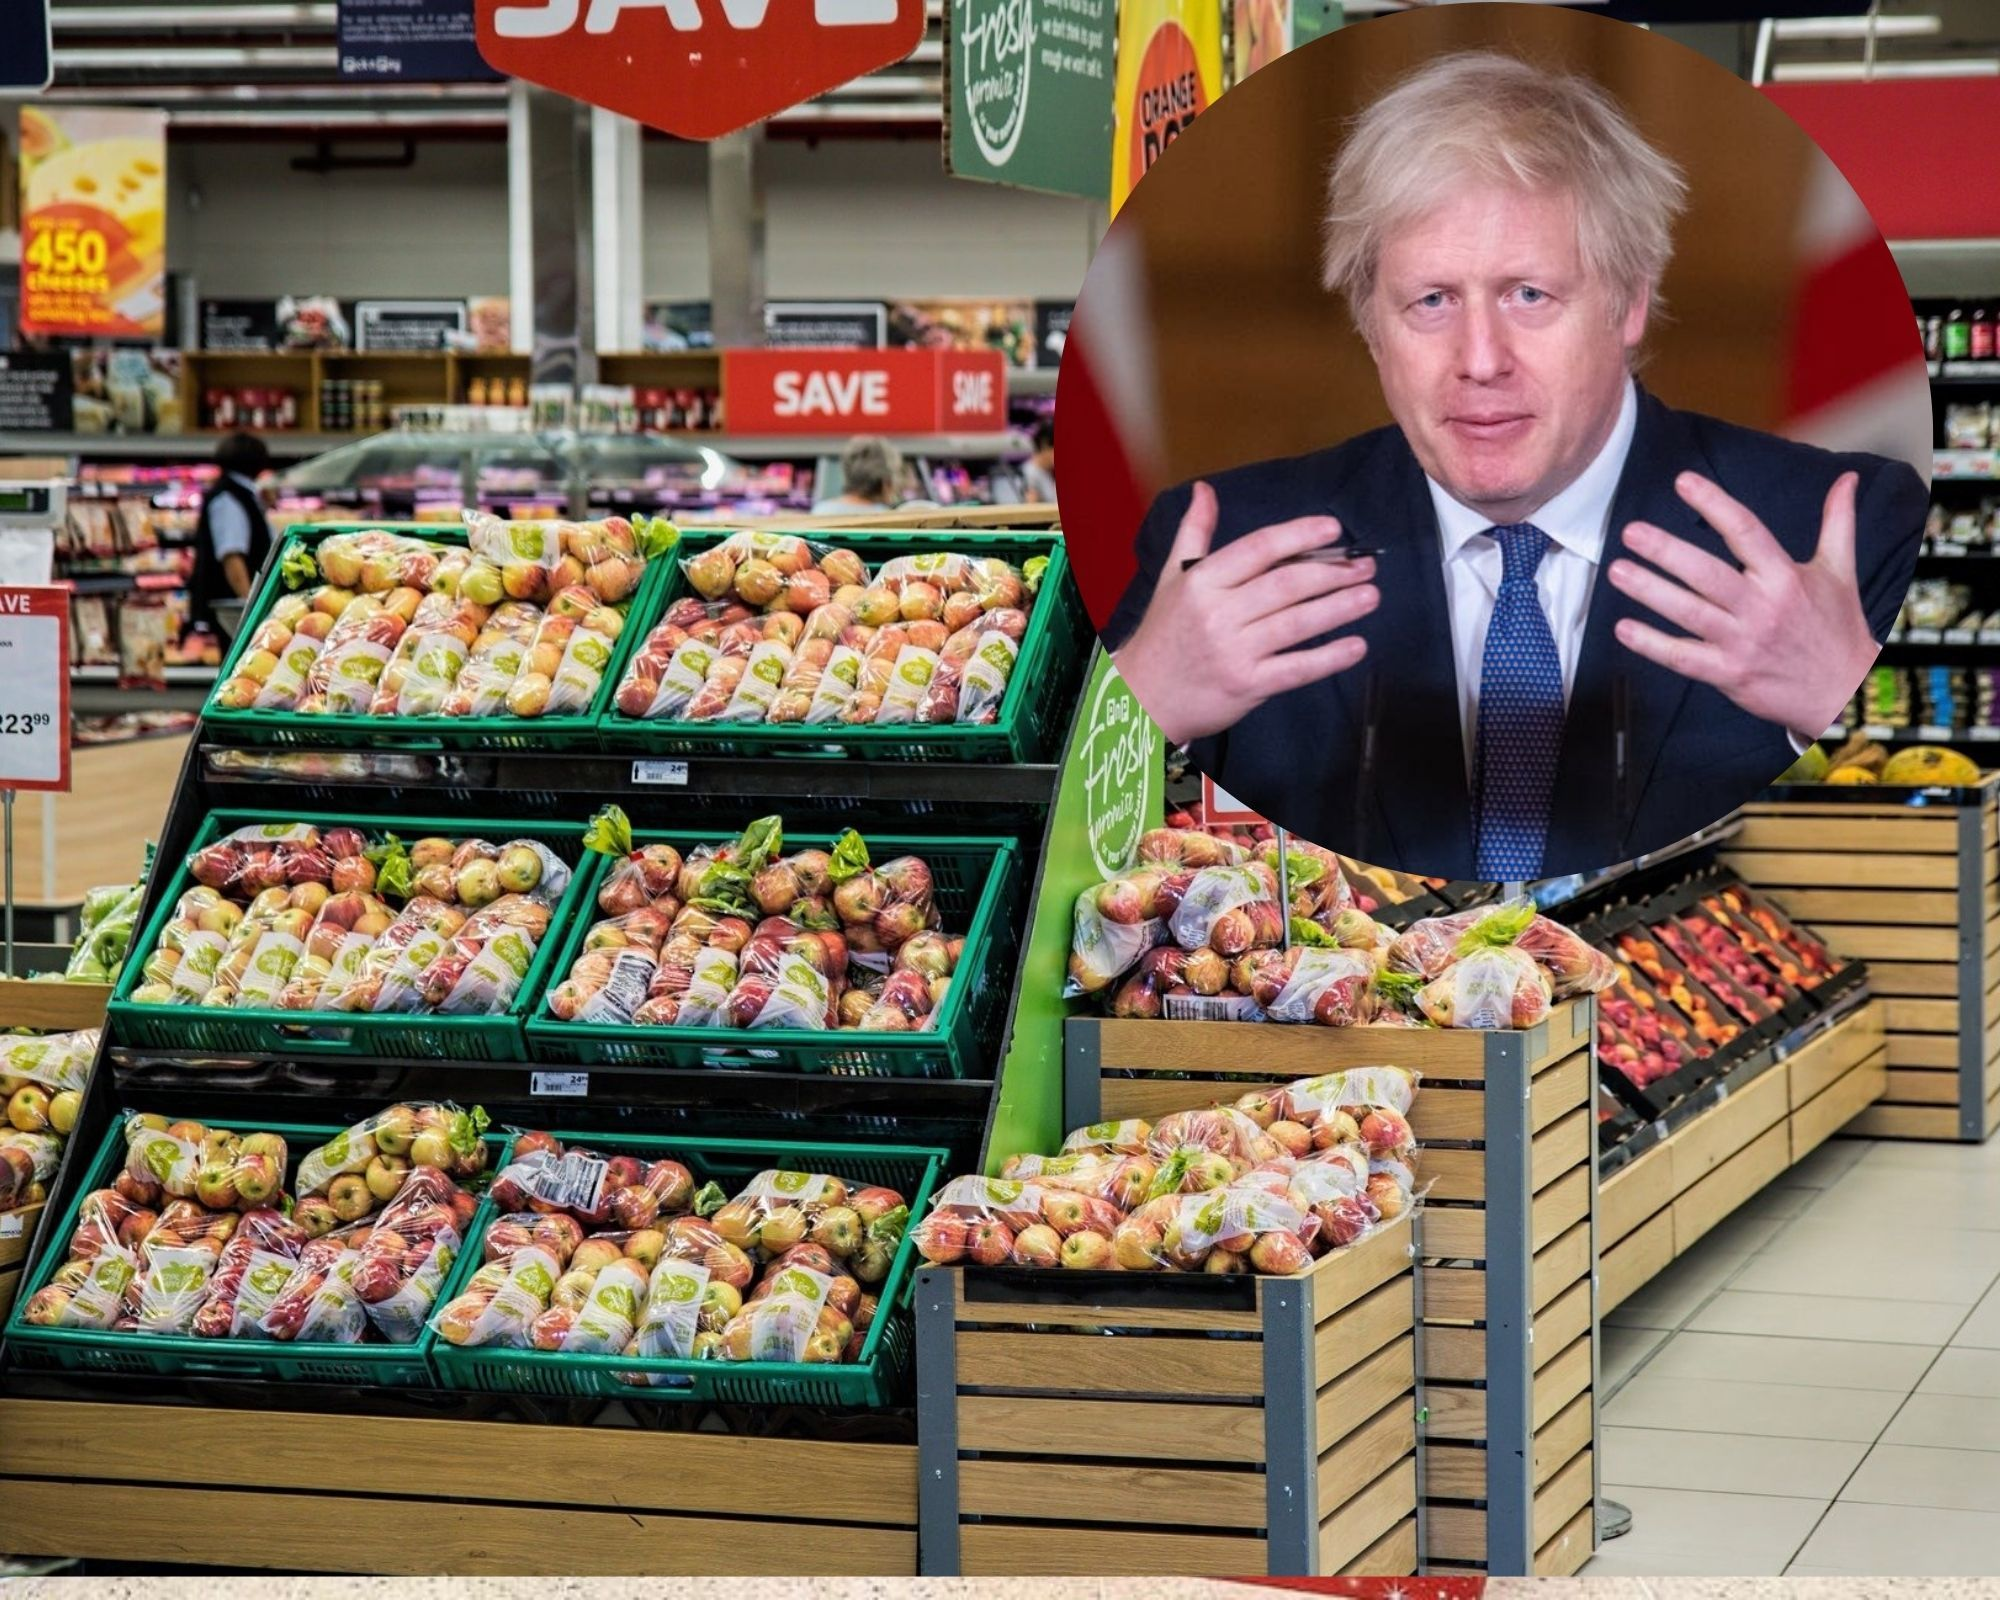 PM's warning about coronavirus risk by handling items in supermarkets